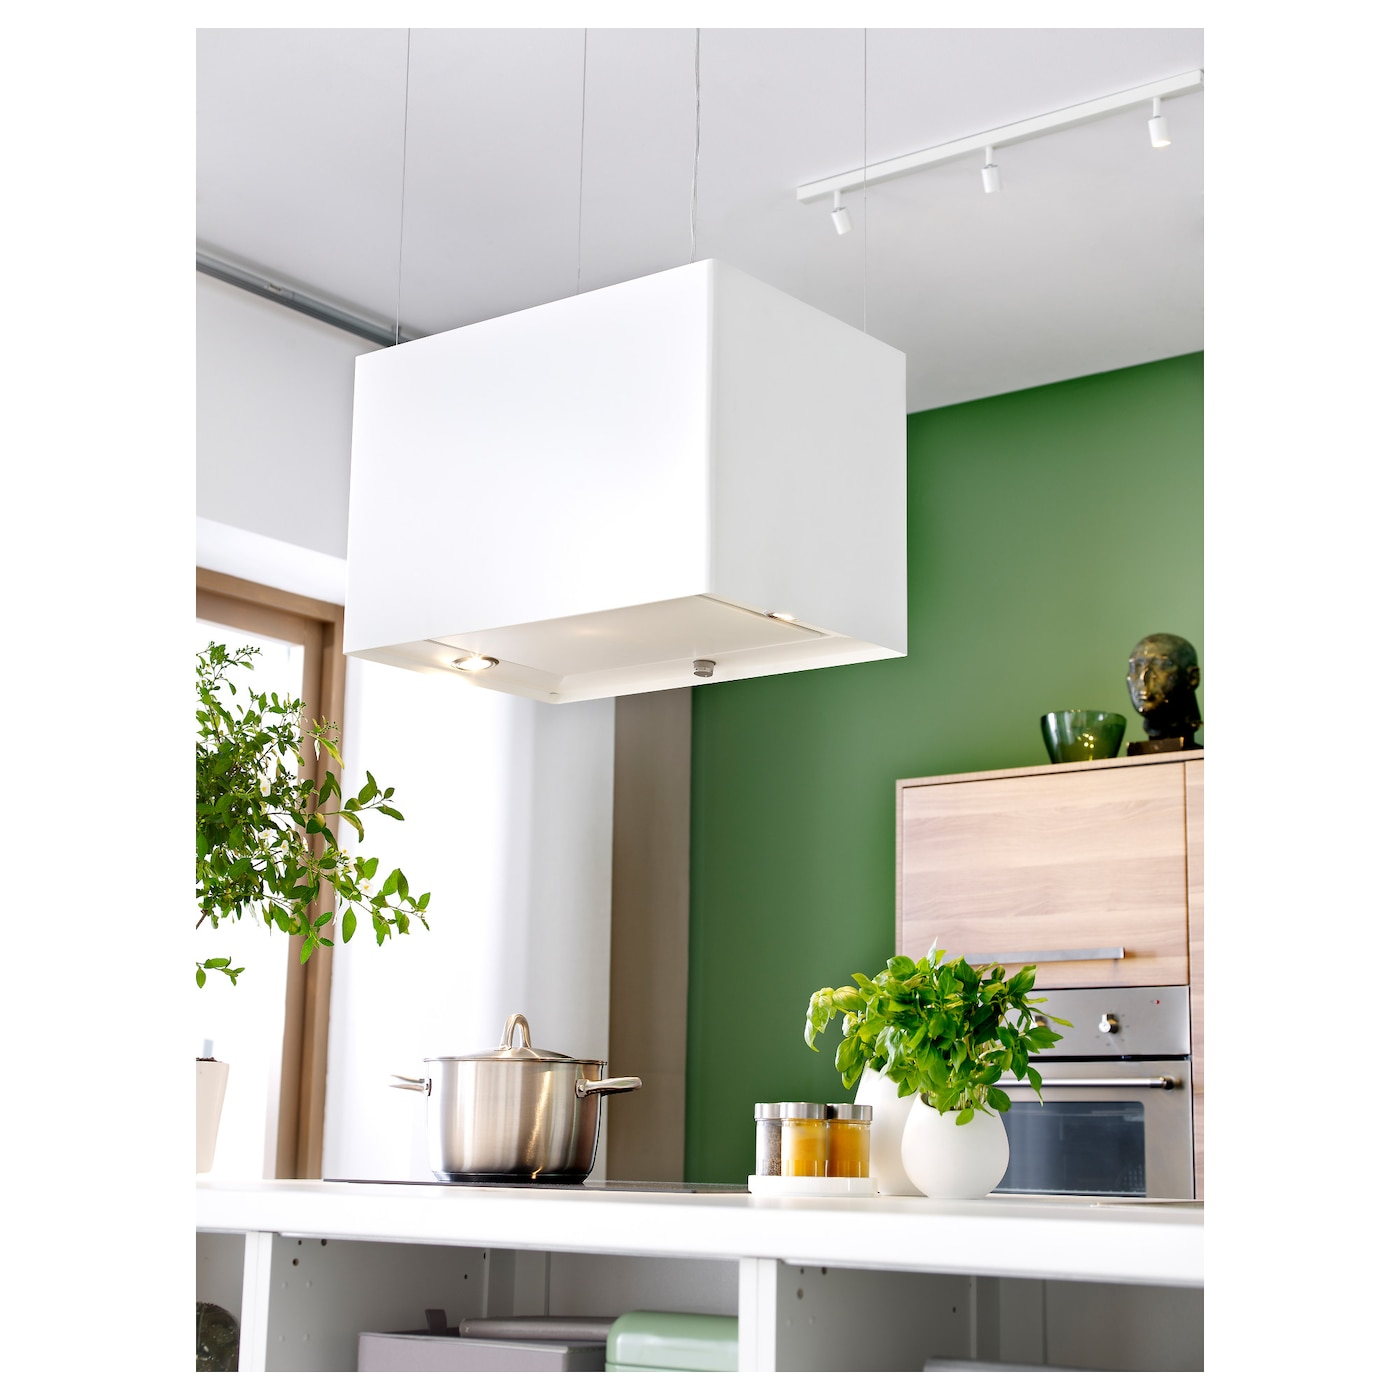 IKEA LÄCKERBIT extractor hood 5 year guarantee. Read about the terms in the guarantee brochure.